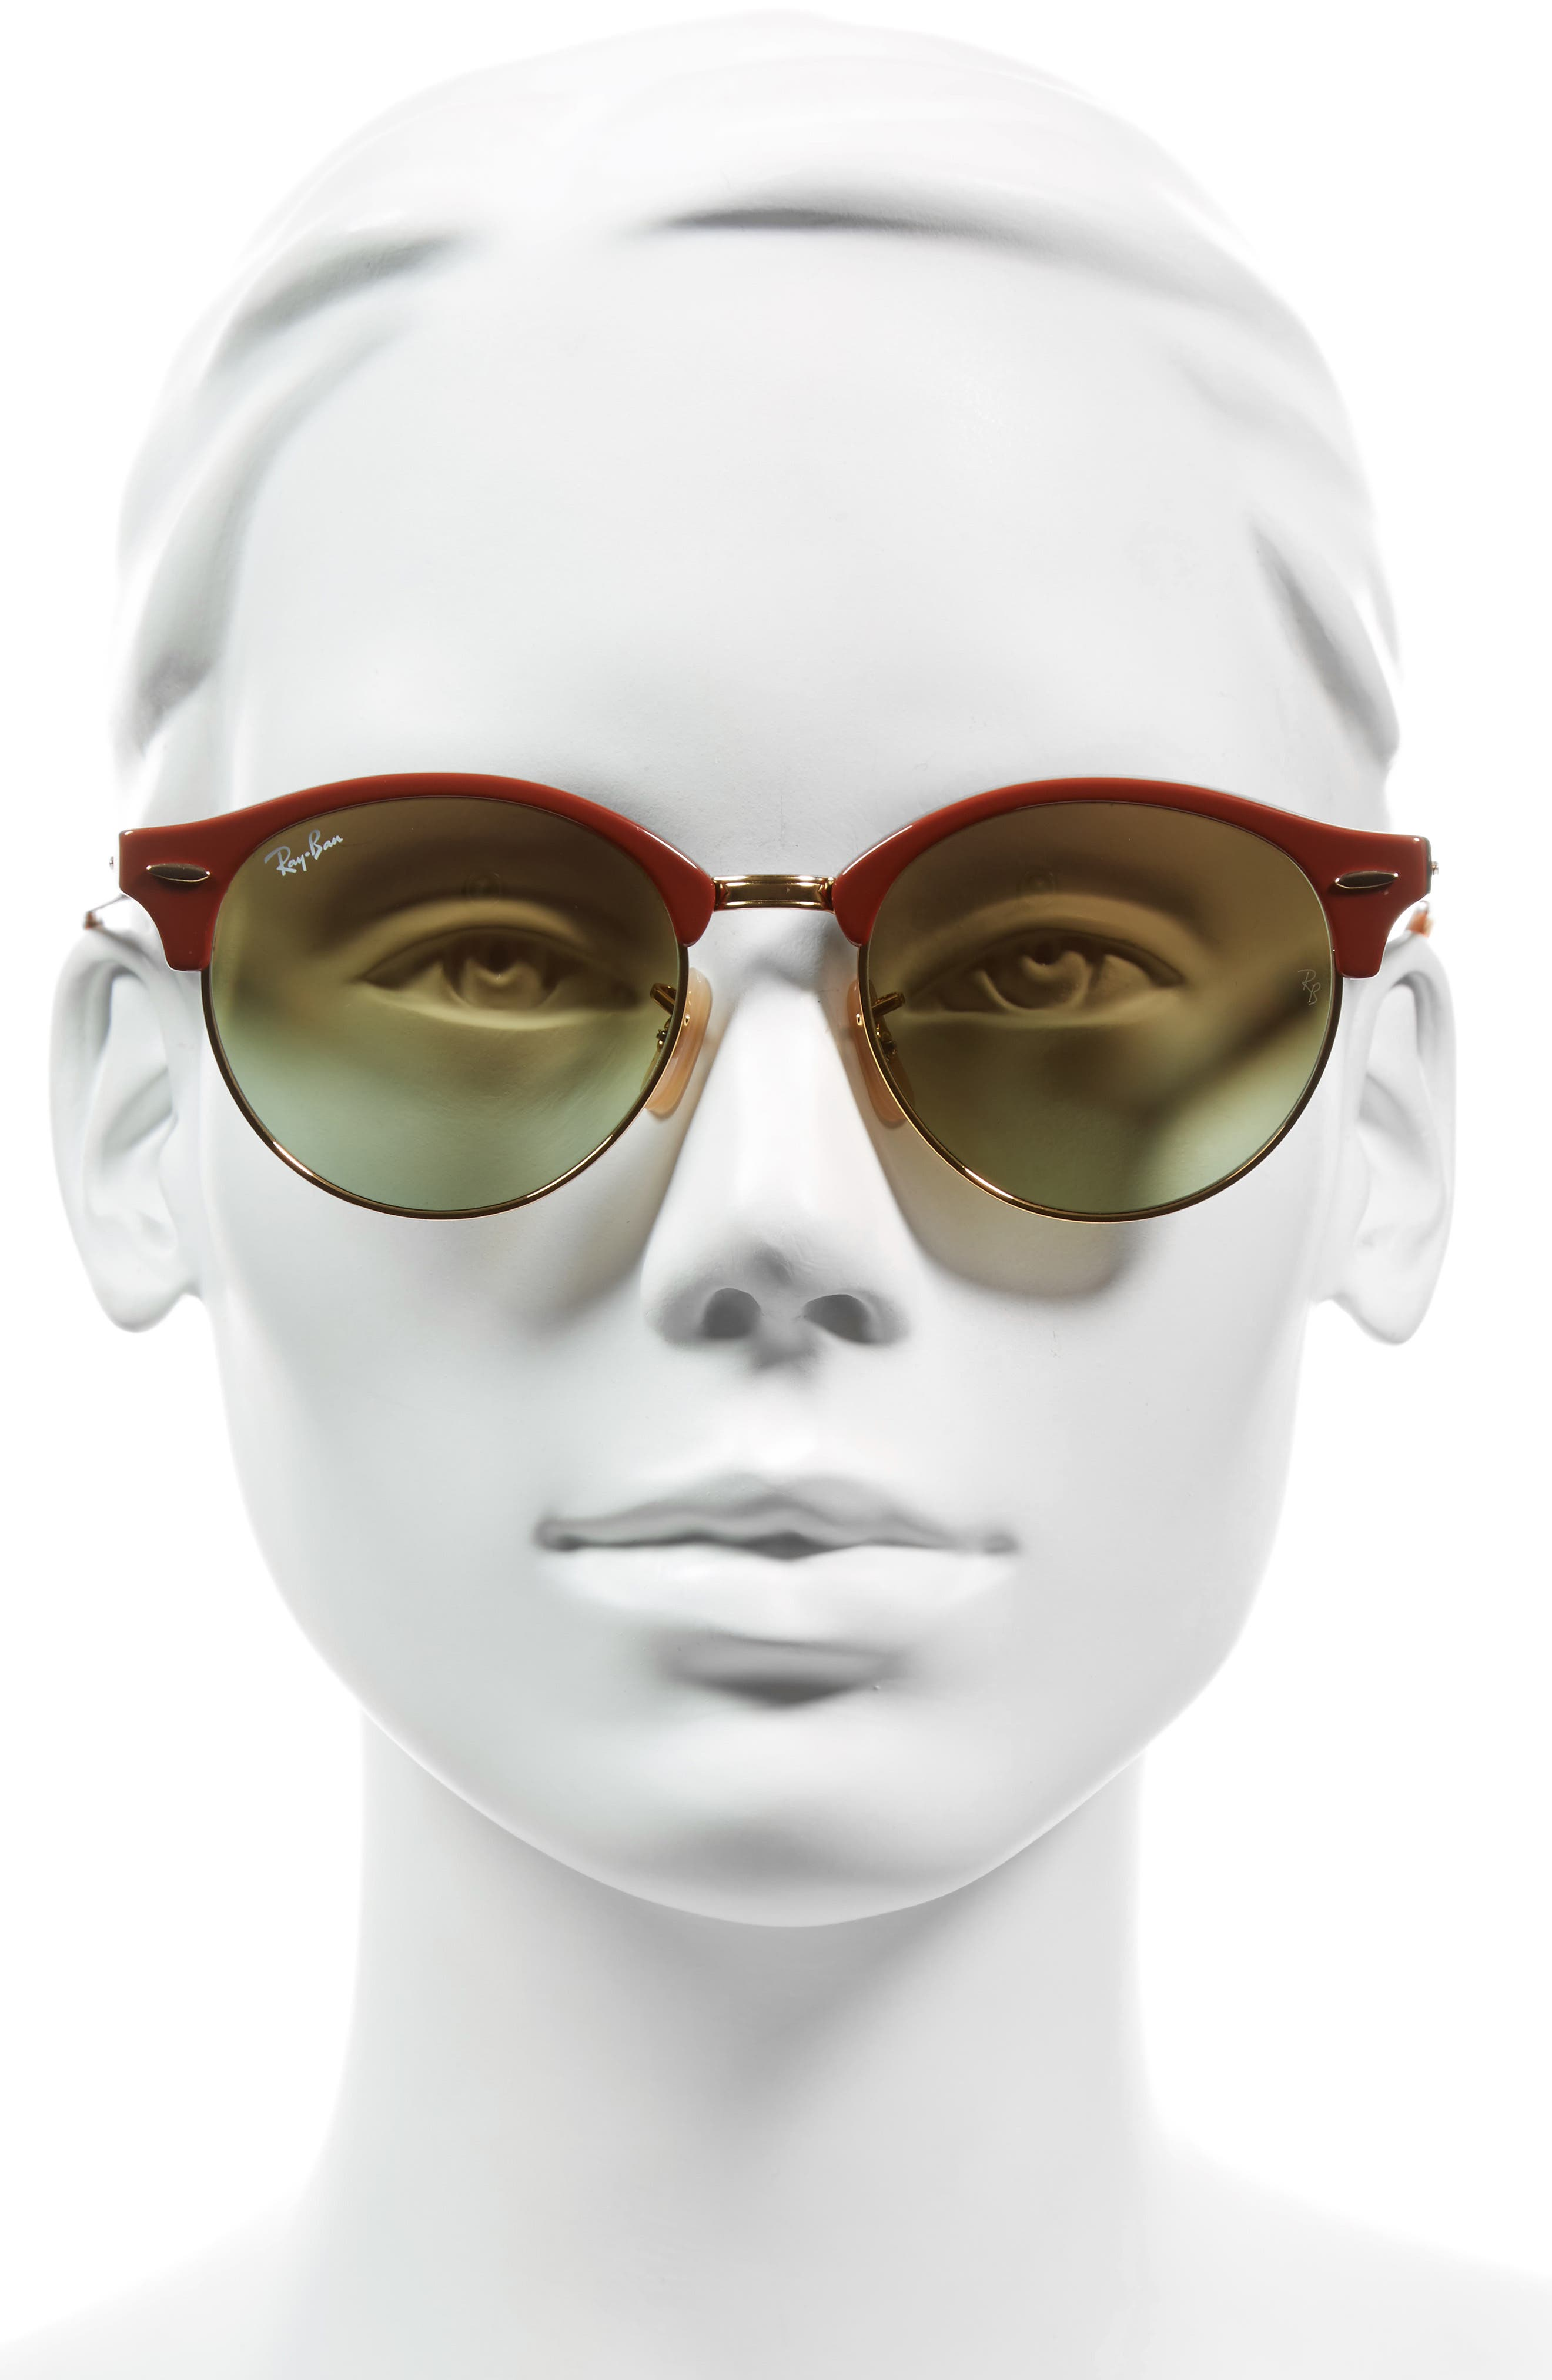 Clubround 51mm Round Sunglasses,                             Alternate thumbnail 2, color,                             Gold